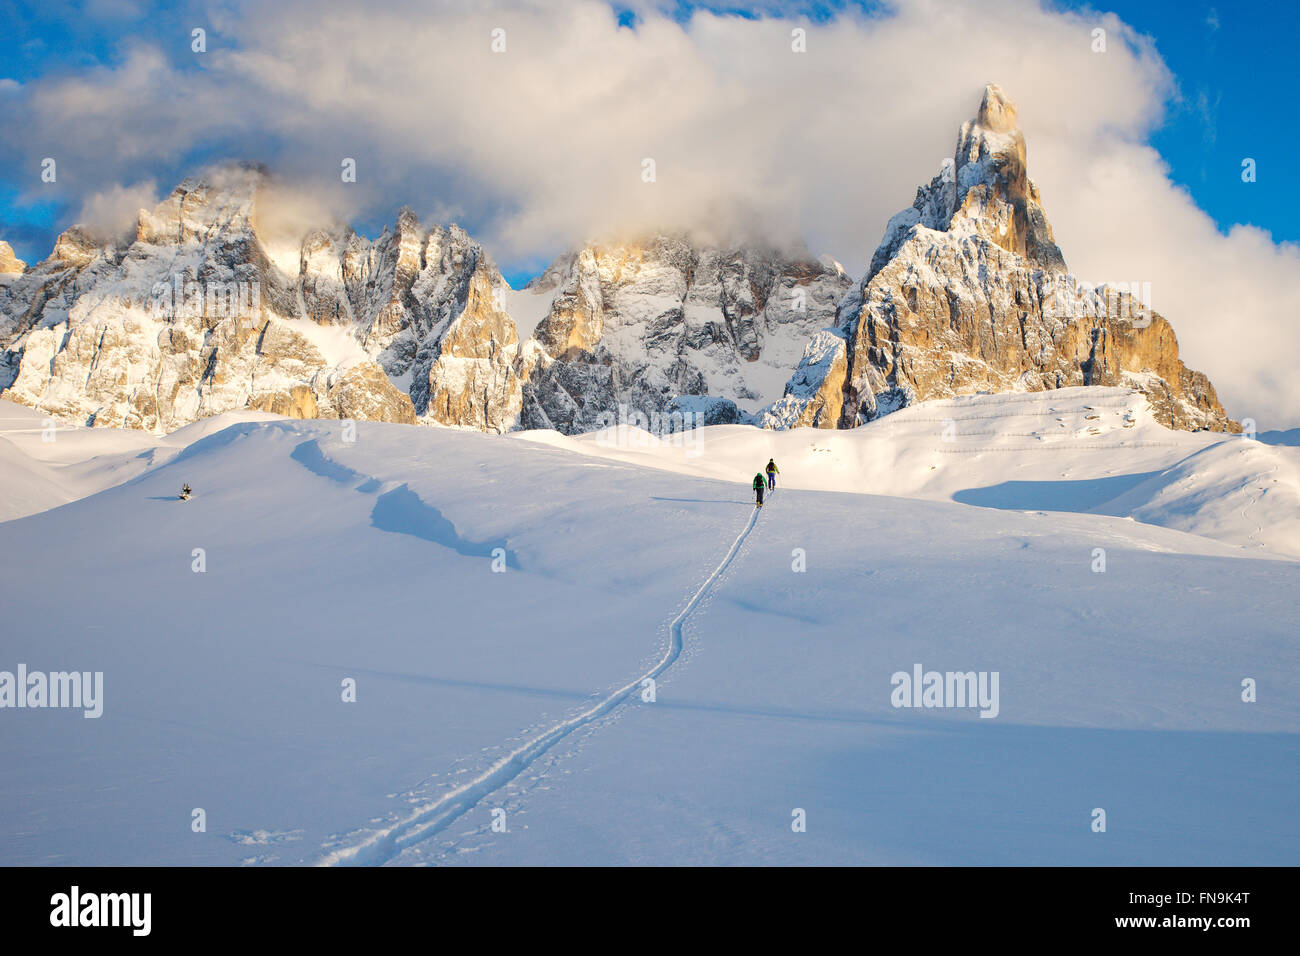 Two skiers, Dolomites, Italy - Stock Image